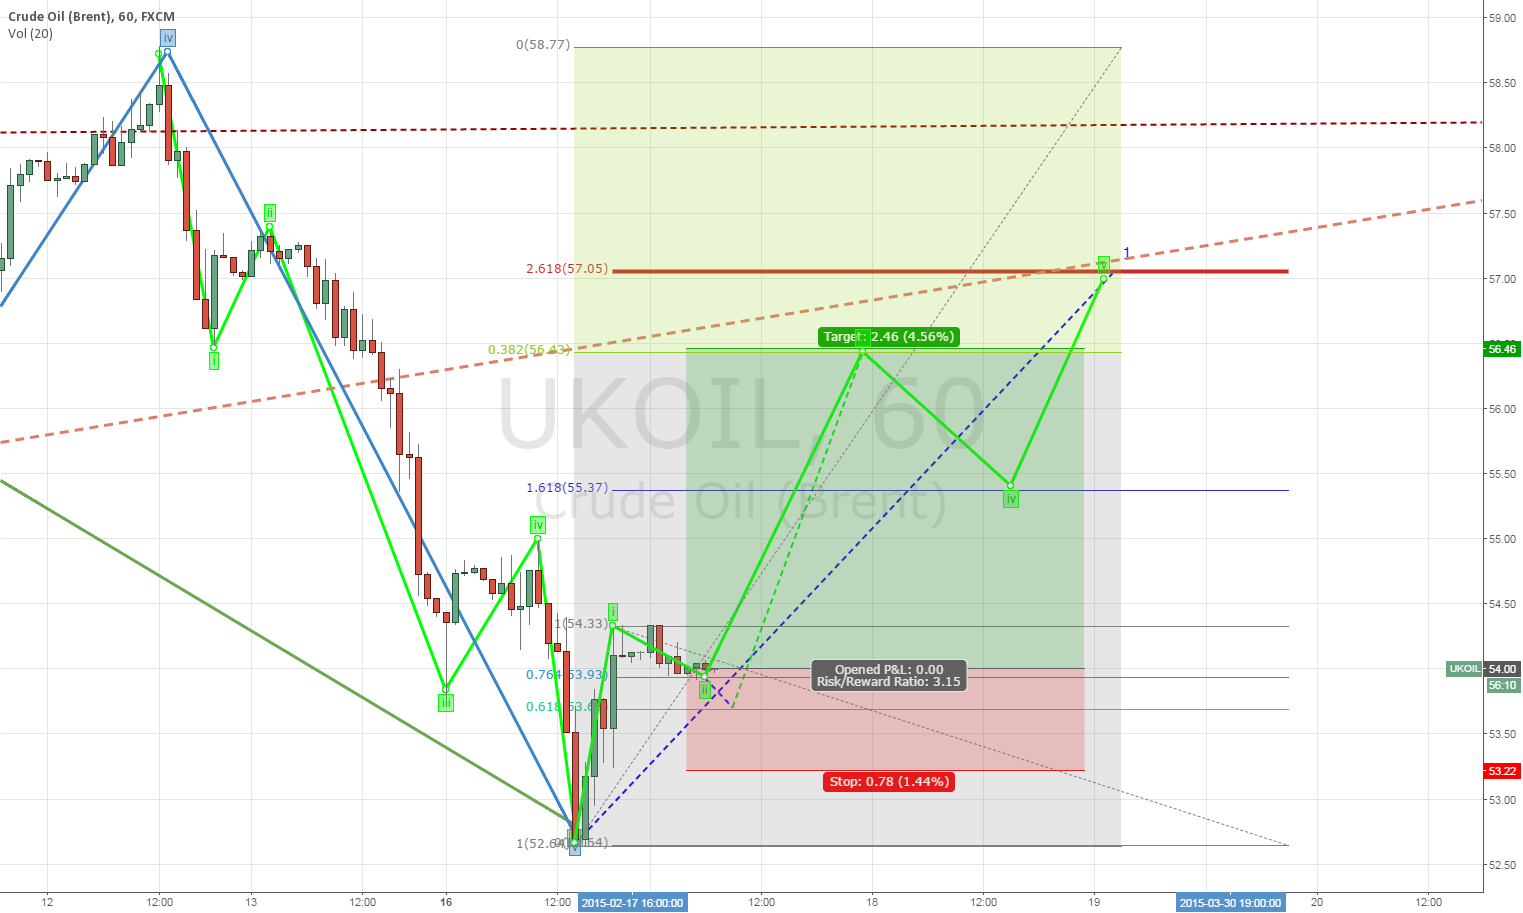 Long UKOIL to 56.4